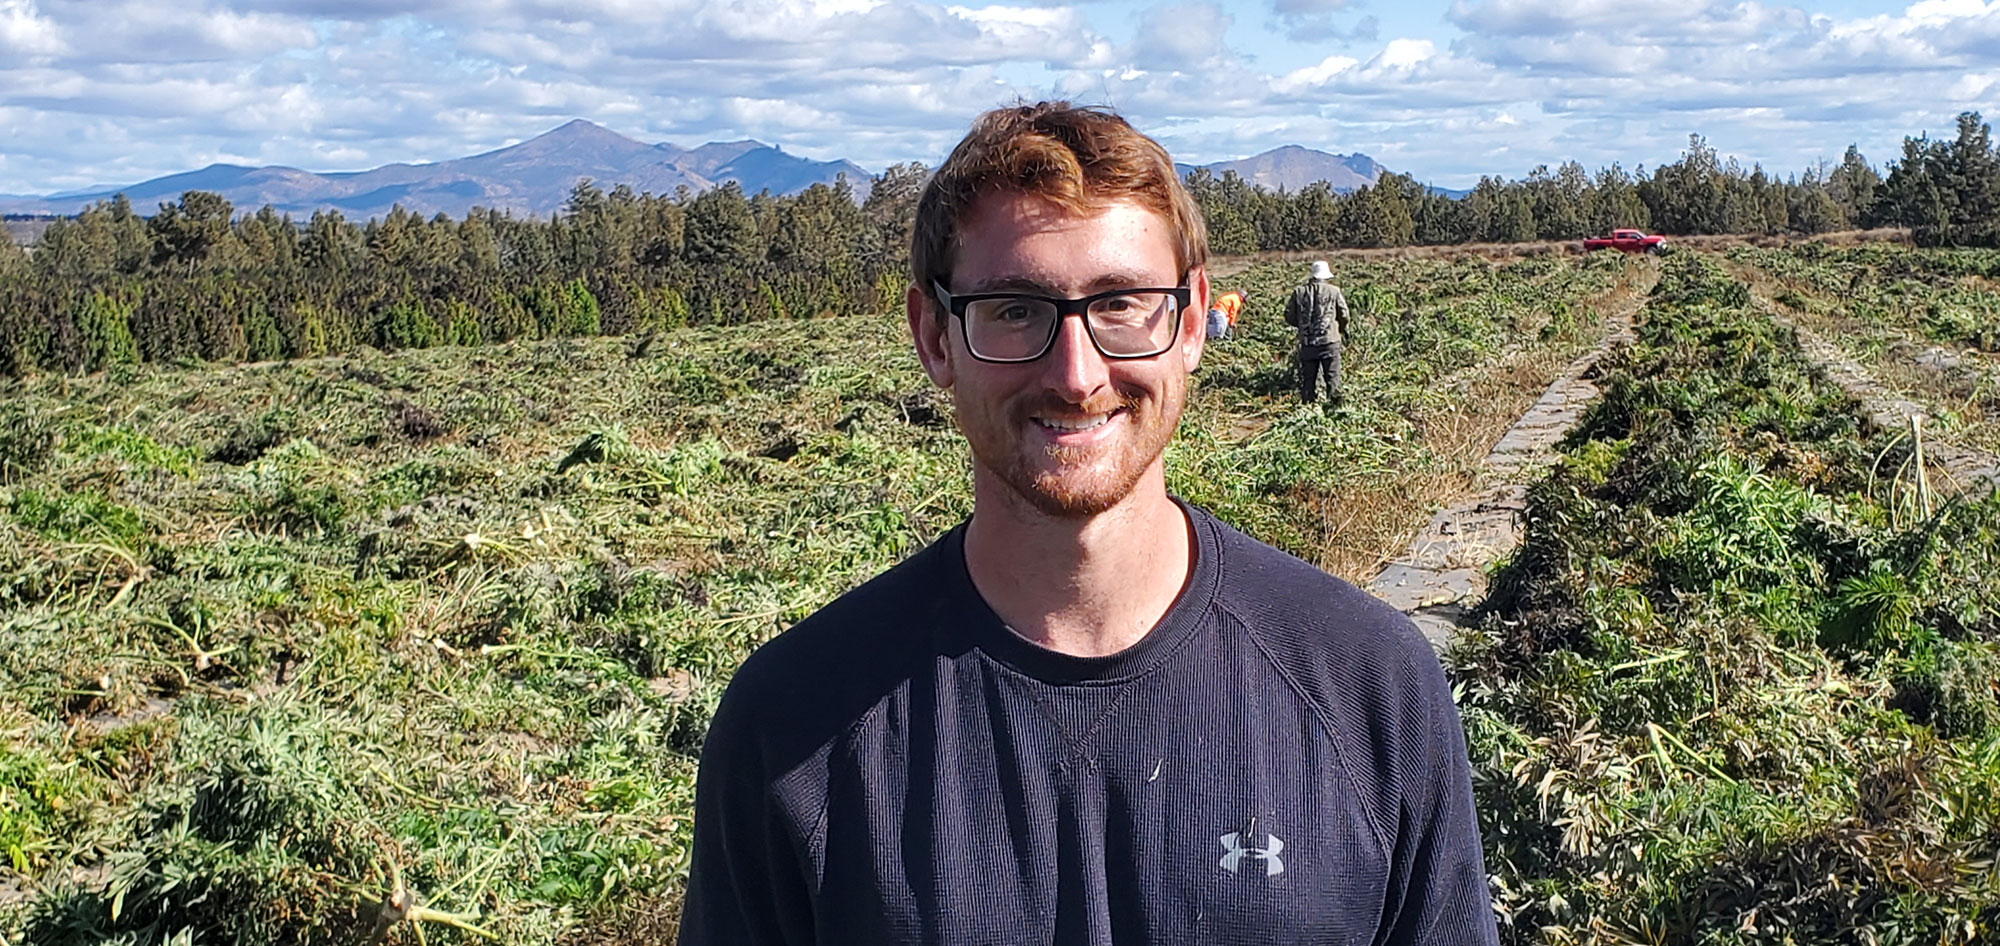 Faces of the Farm: Zack Troyer - Field Operations